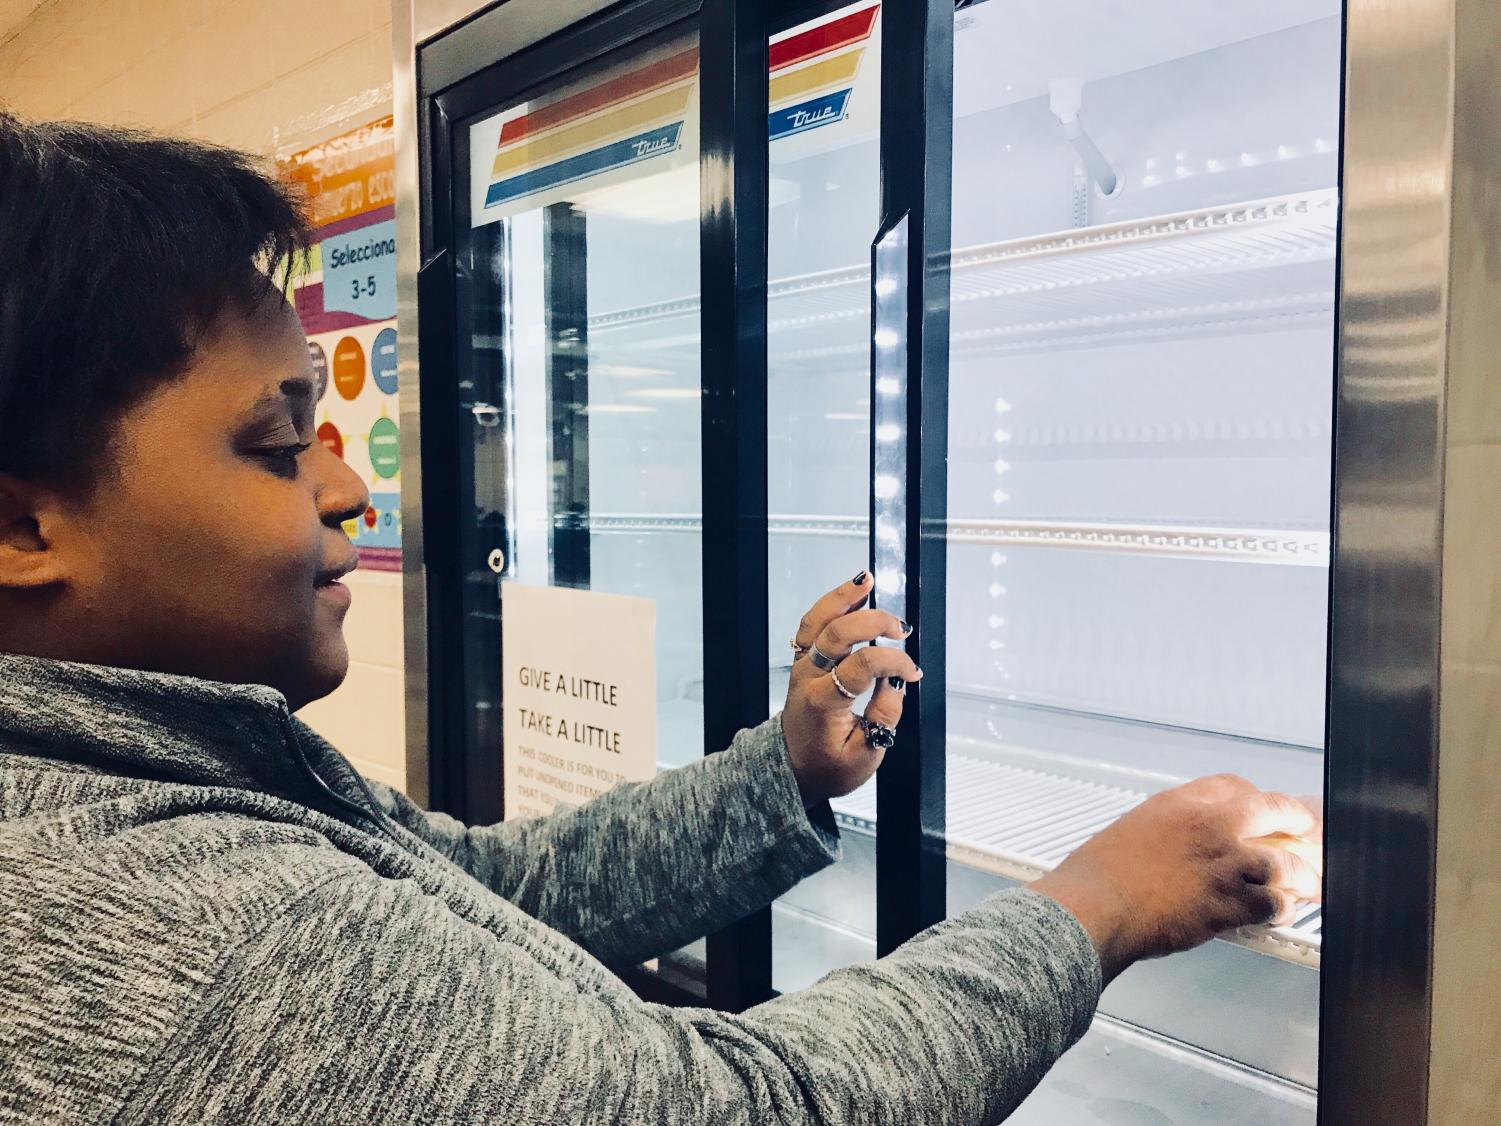 LUNCH LADIES PUT A POSSIBLE STOP TO FOOD WASTE WITH A FREE FOOD PANTRY — Ashauna Parrish places an unopened food item in the designated cooler for another student to enjoy.